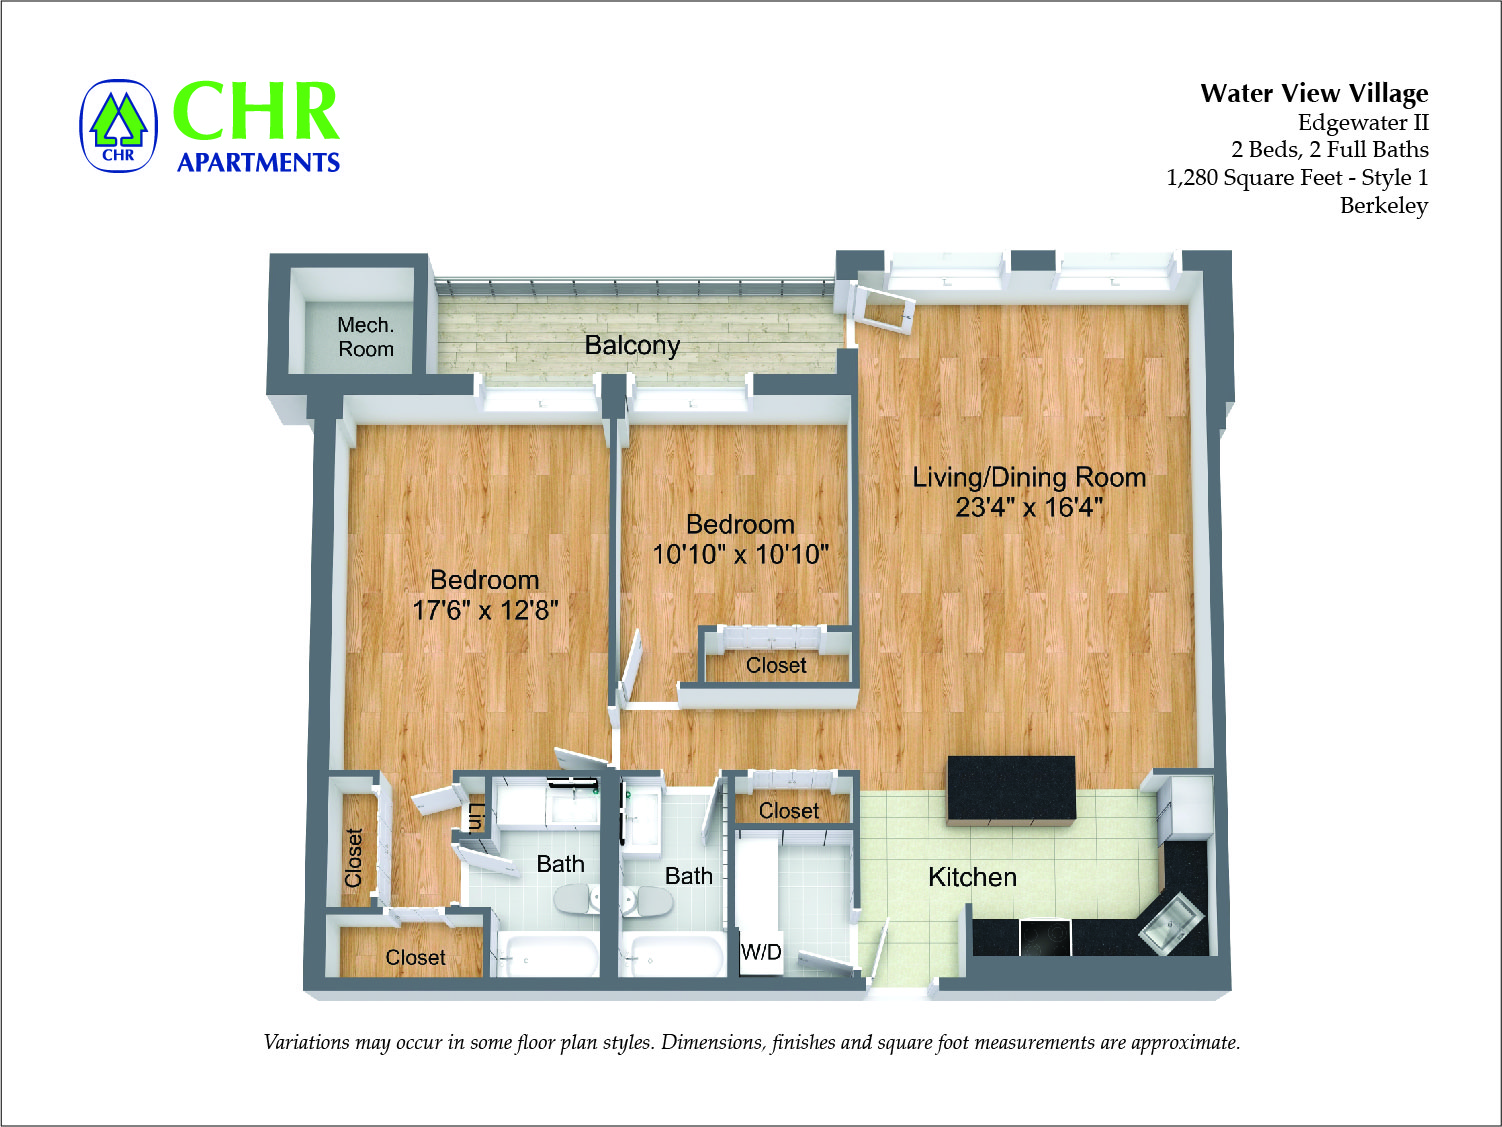 Click to view 2 Bedroom Large with Balcony floor plan gallery